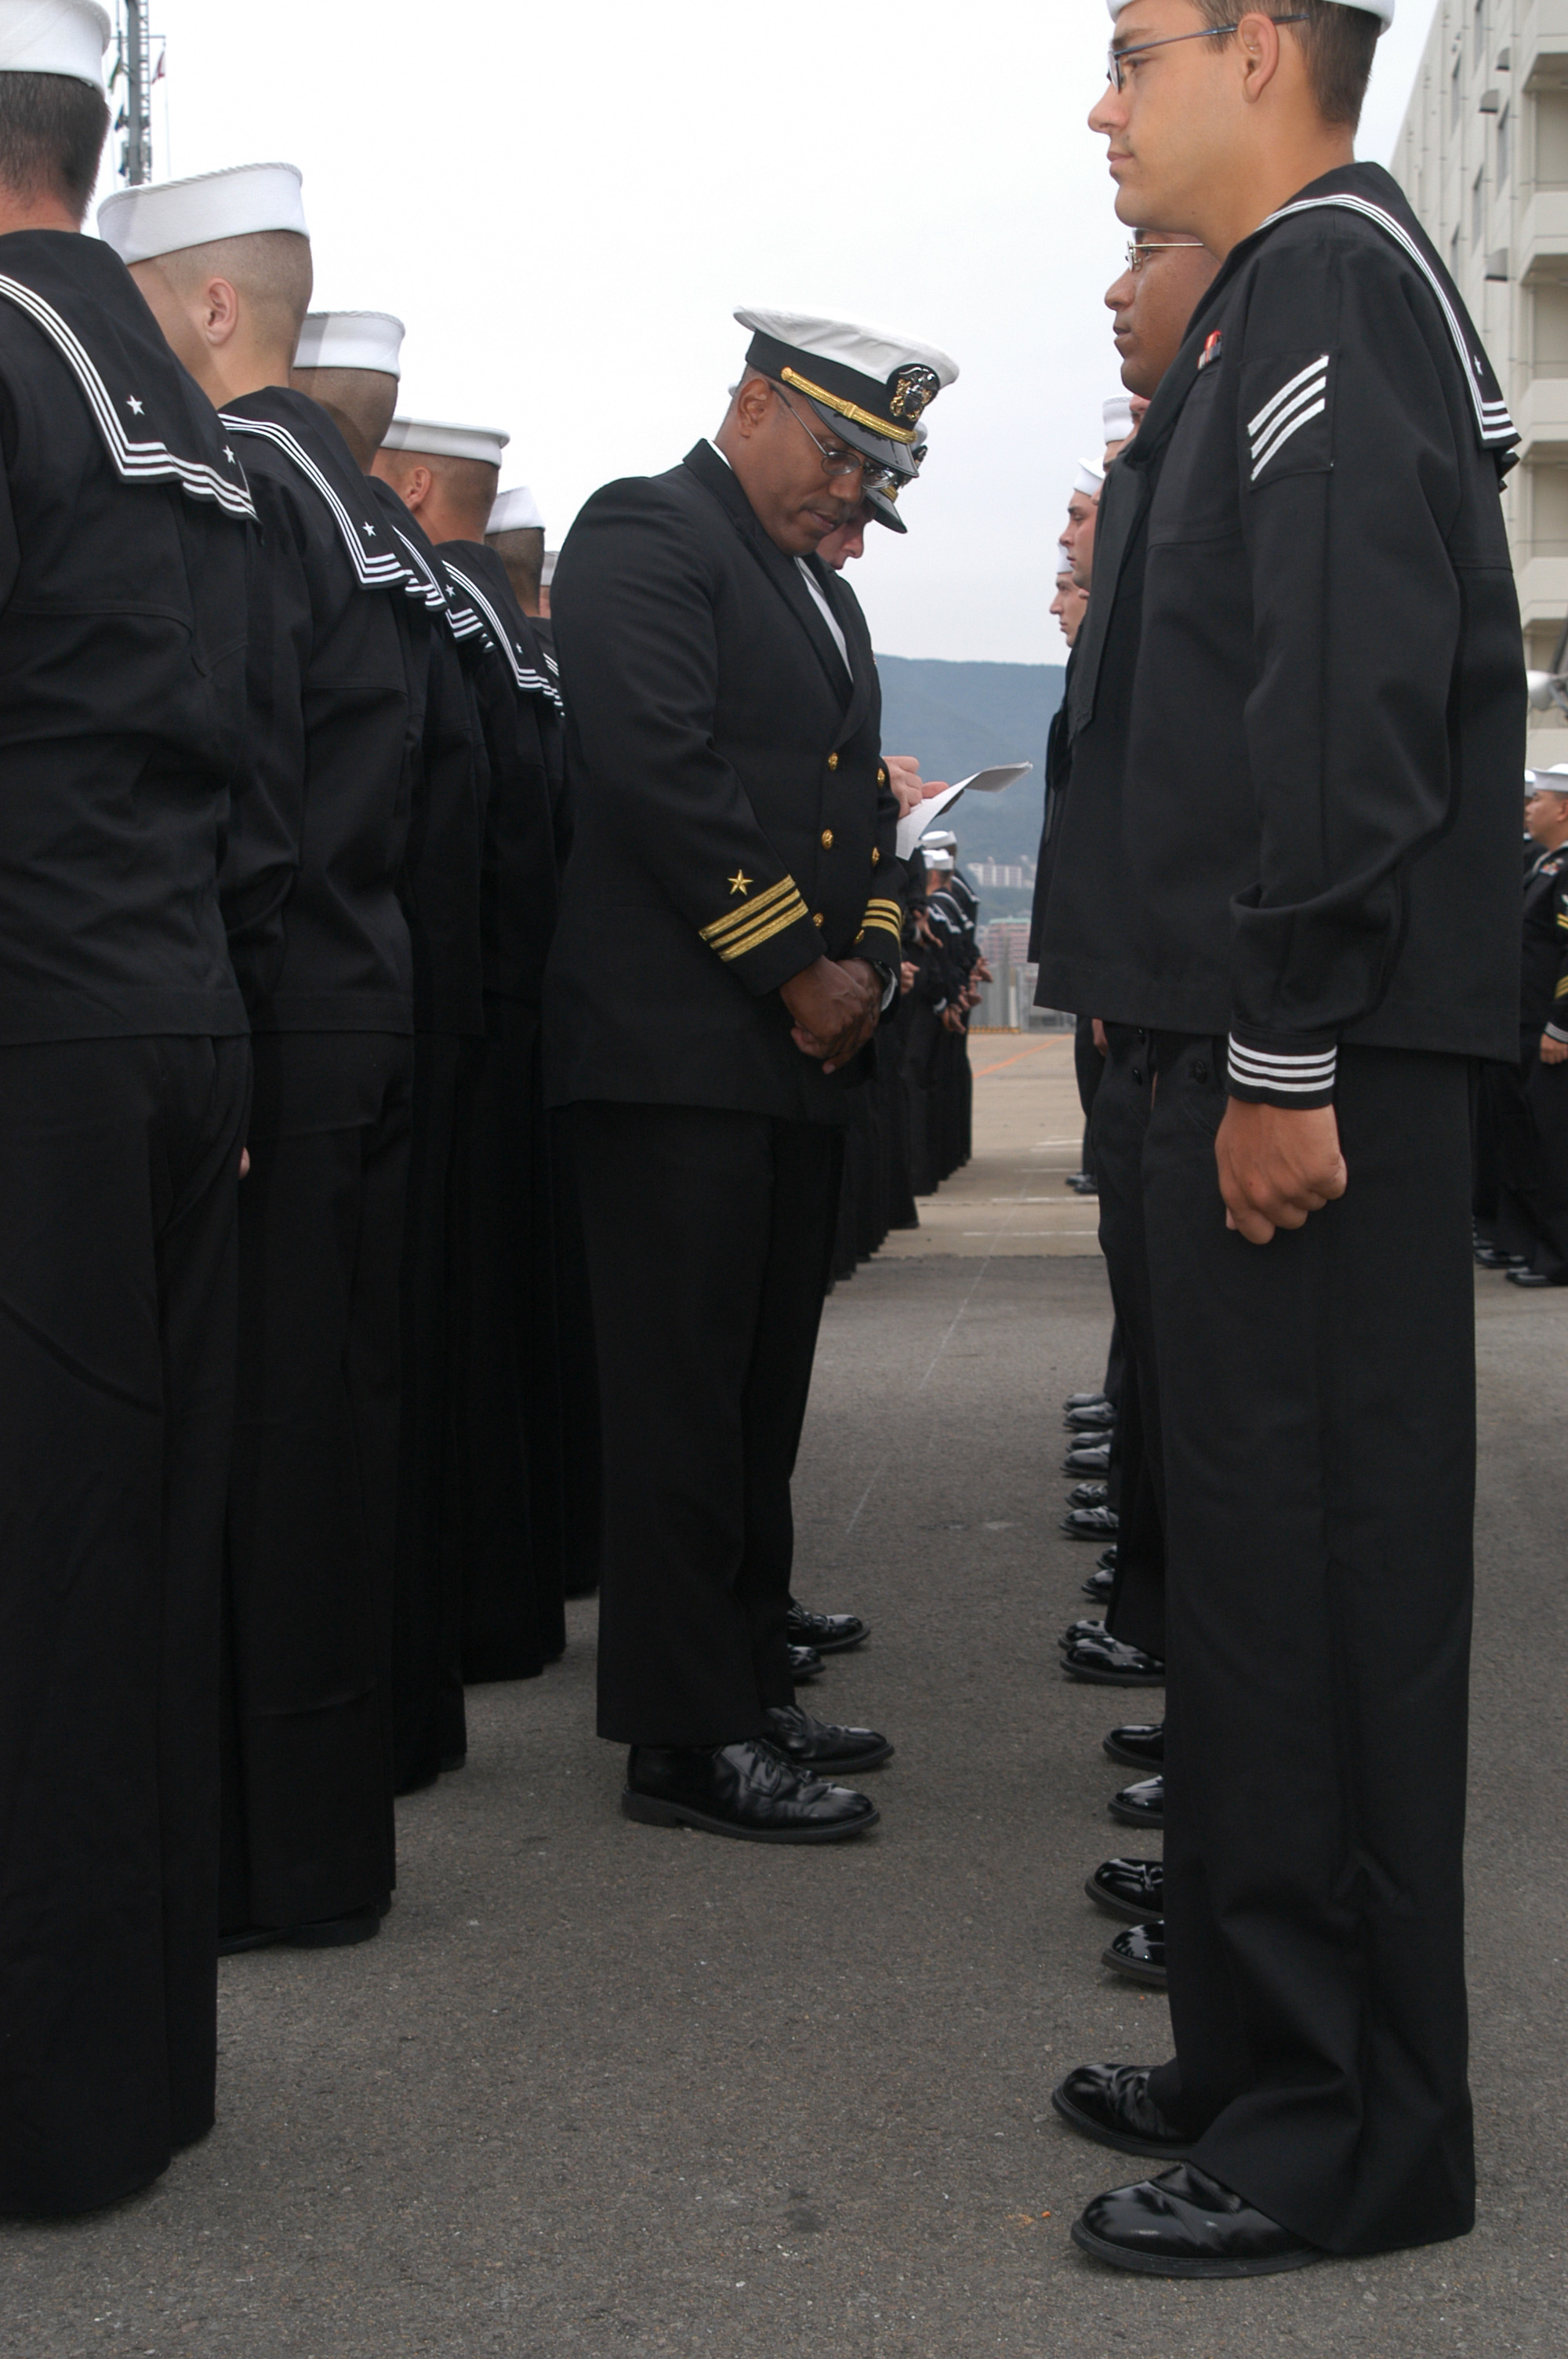 ... dress blue uniform inspection pierside along India Basin.jpg